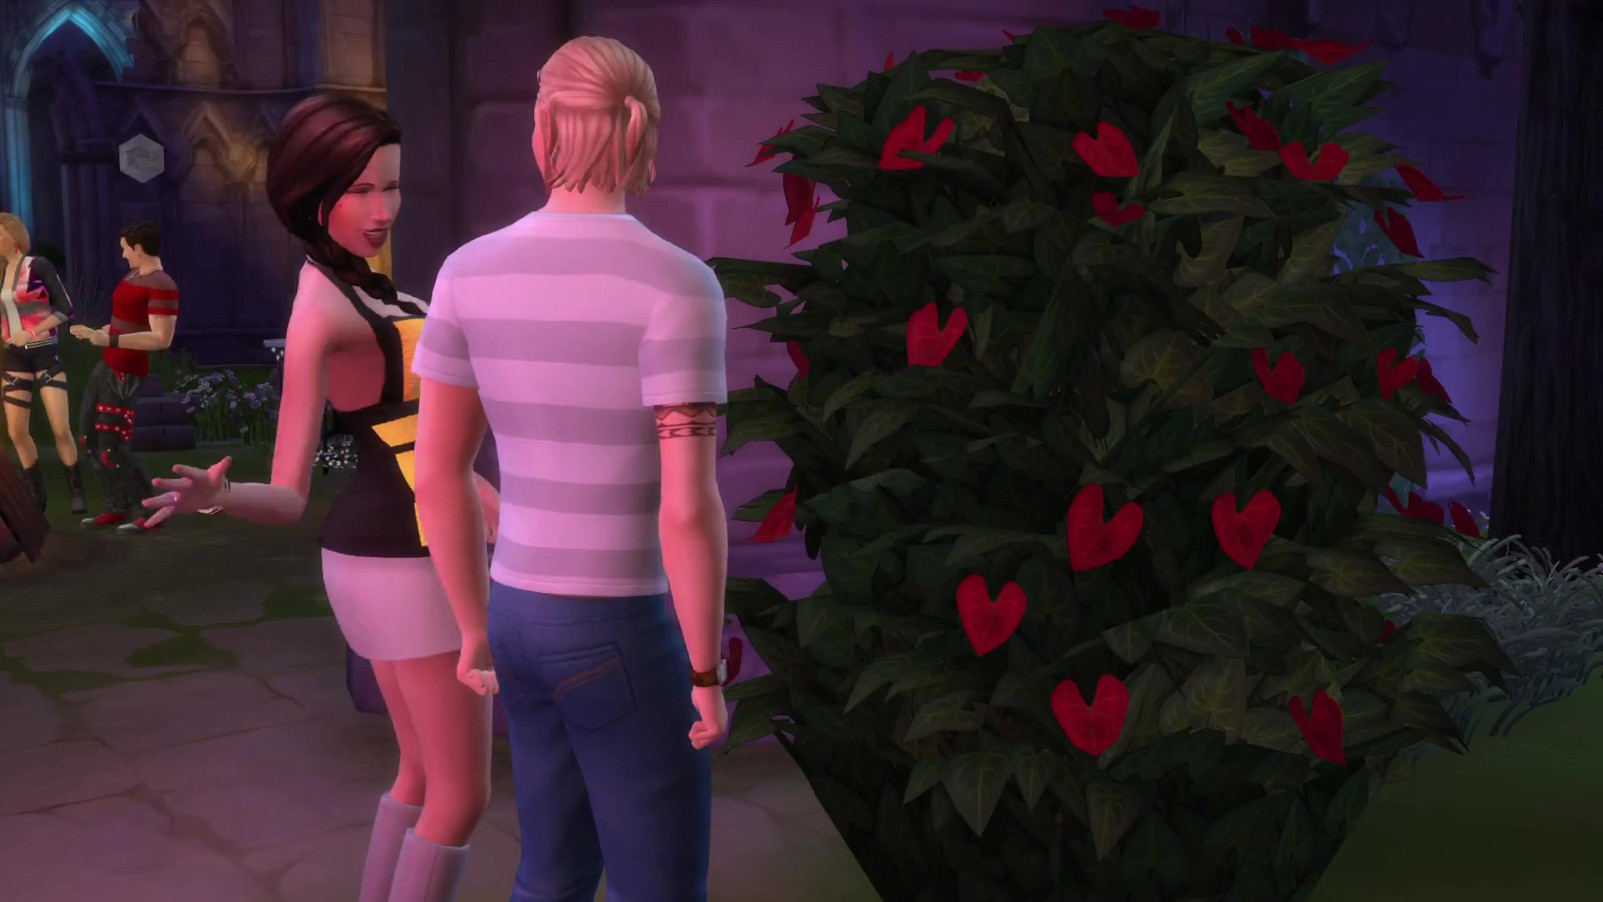 4 animation sims sex Khlas Sex